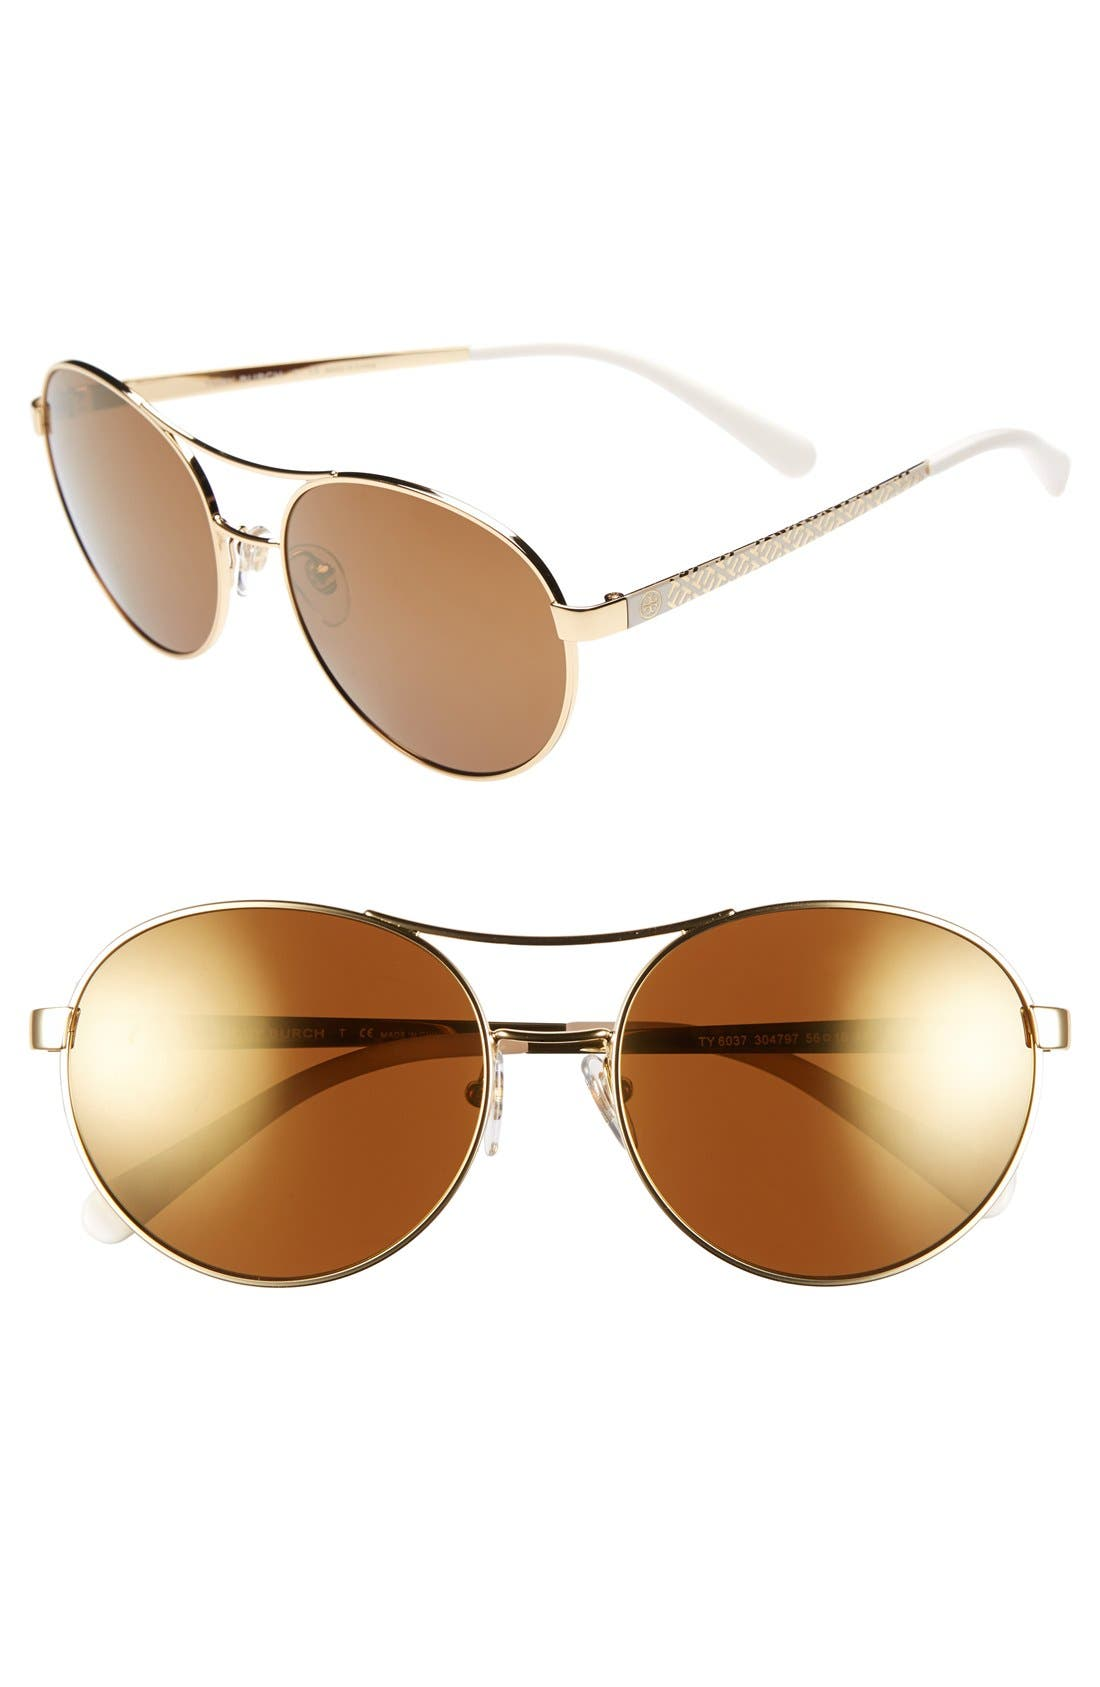 Main Image - Tory Burch 'M Round' 56mm Metal Sunglasses